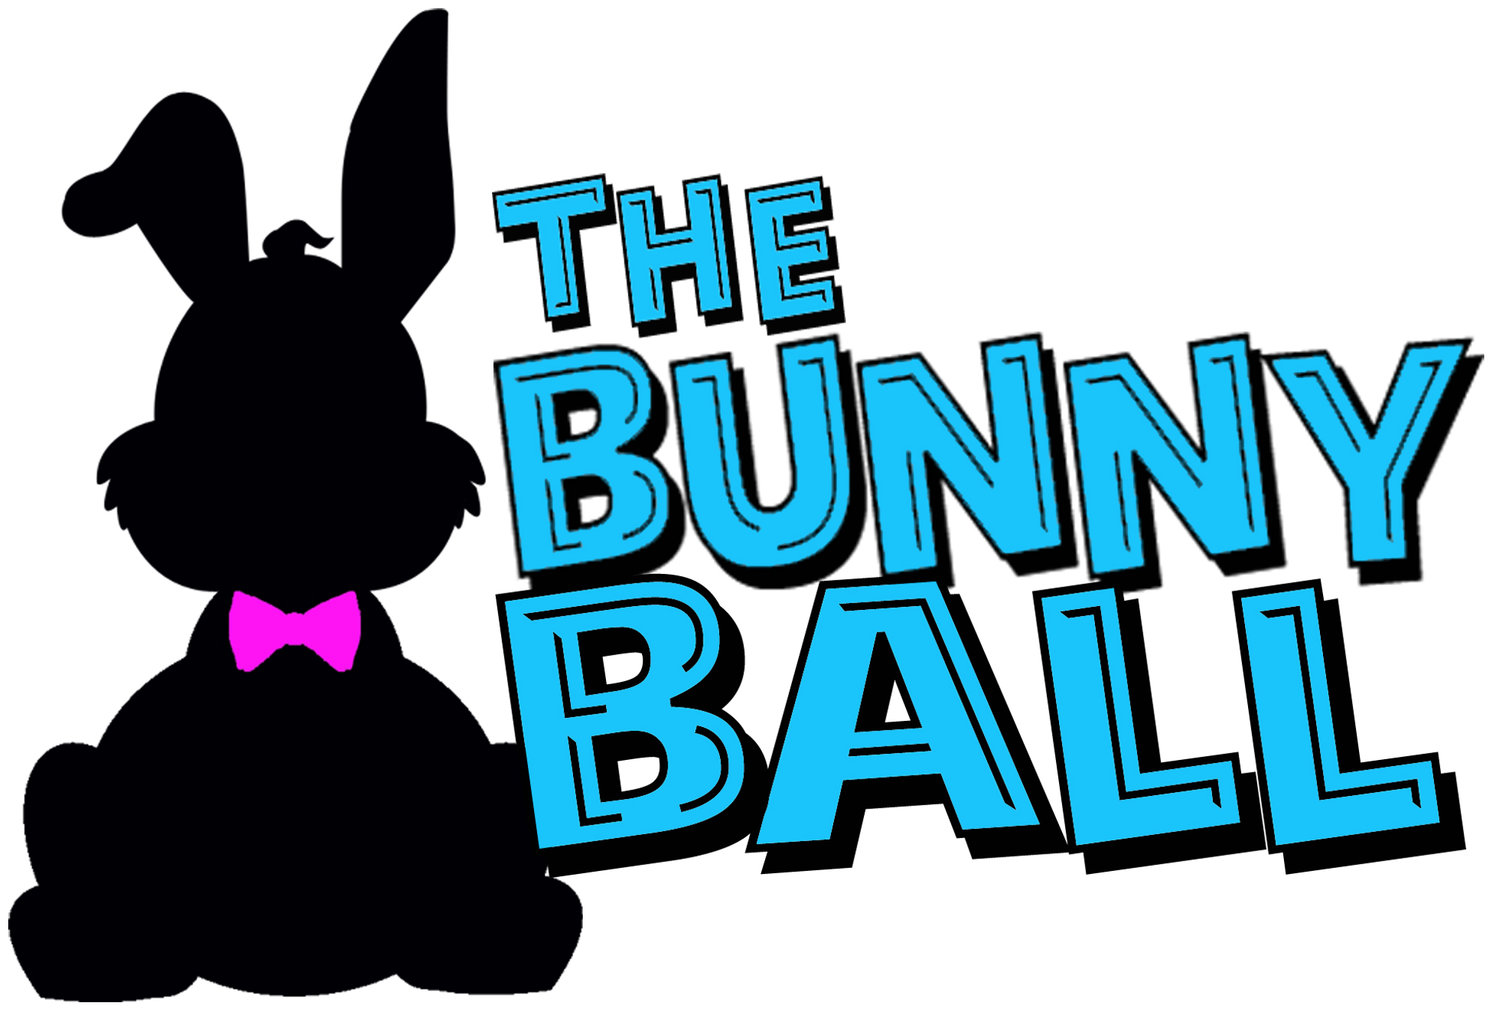 The Bunny Ball